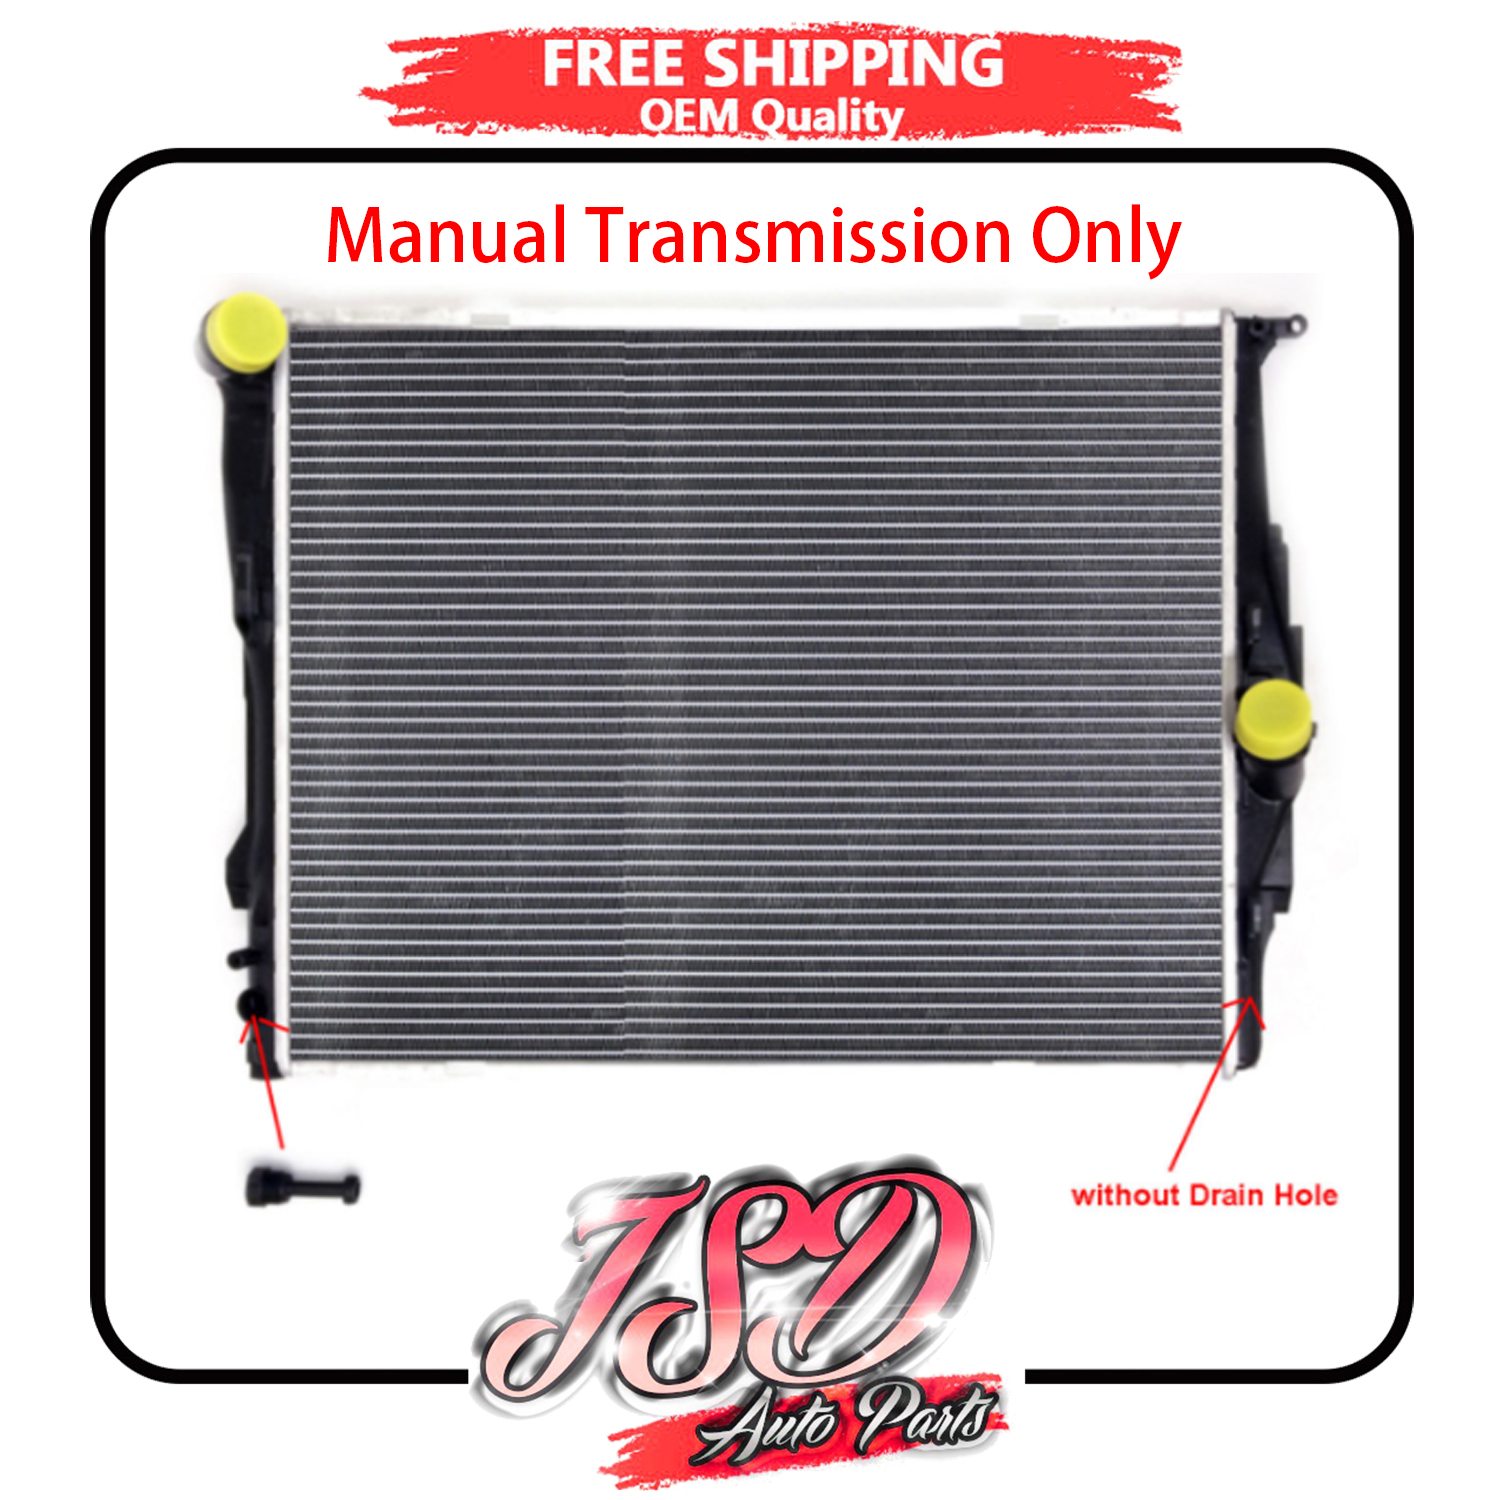 RADIATOR FIT 2001-2006 BMW X5 3.0 L6 For MANUAL TRANSMISSION ONLY